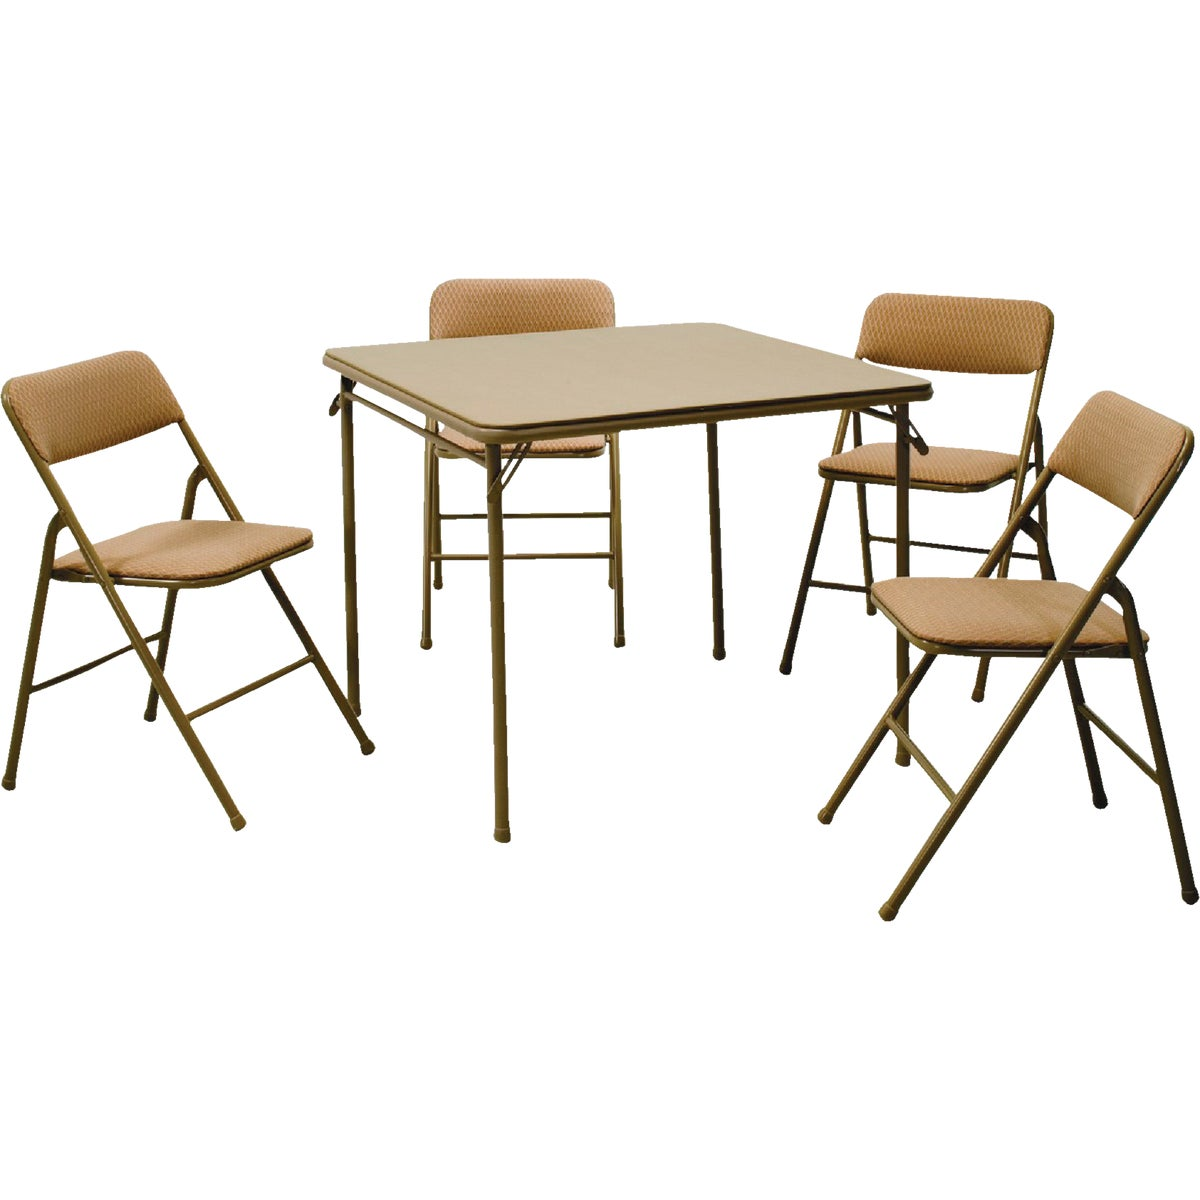 FOLDING TABLE/CHAIR SET - 14-551-WHD by Cosco Import